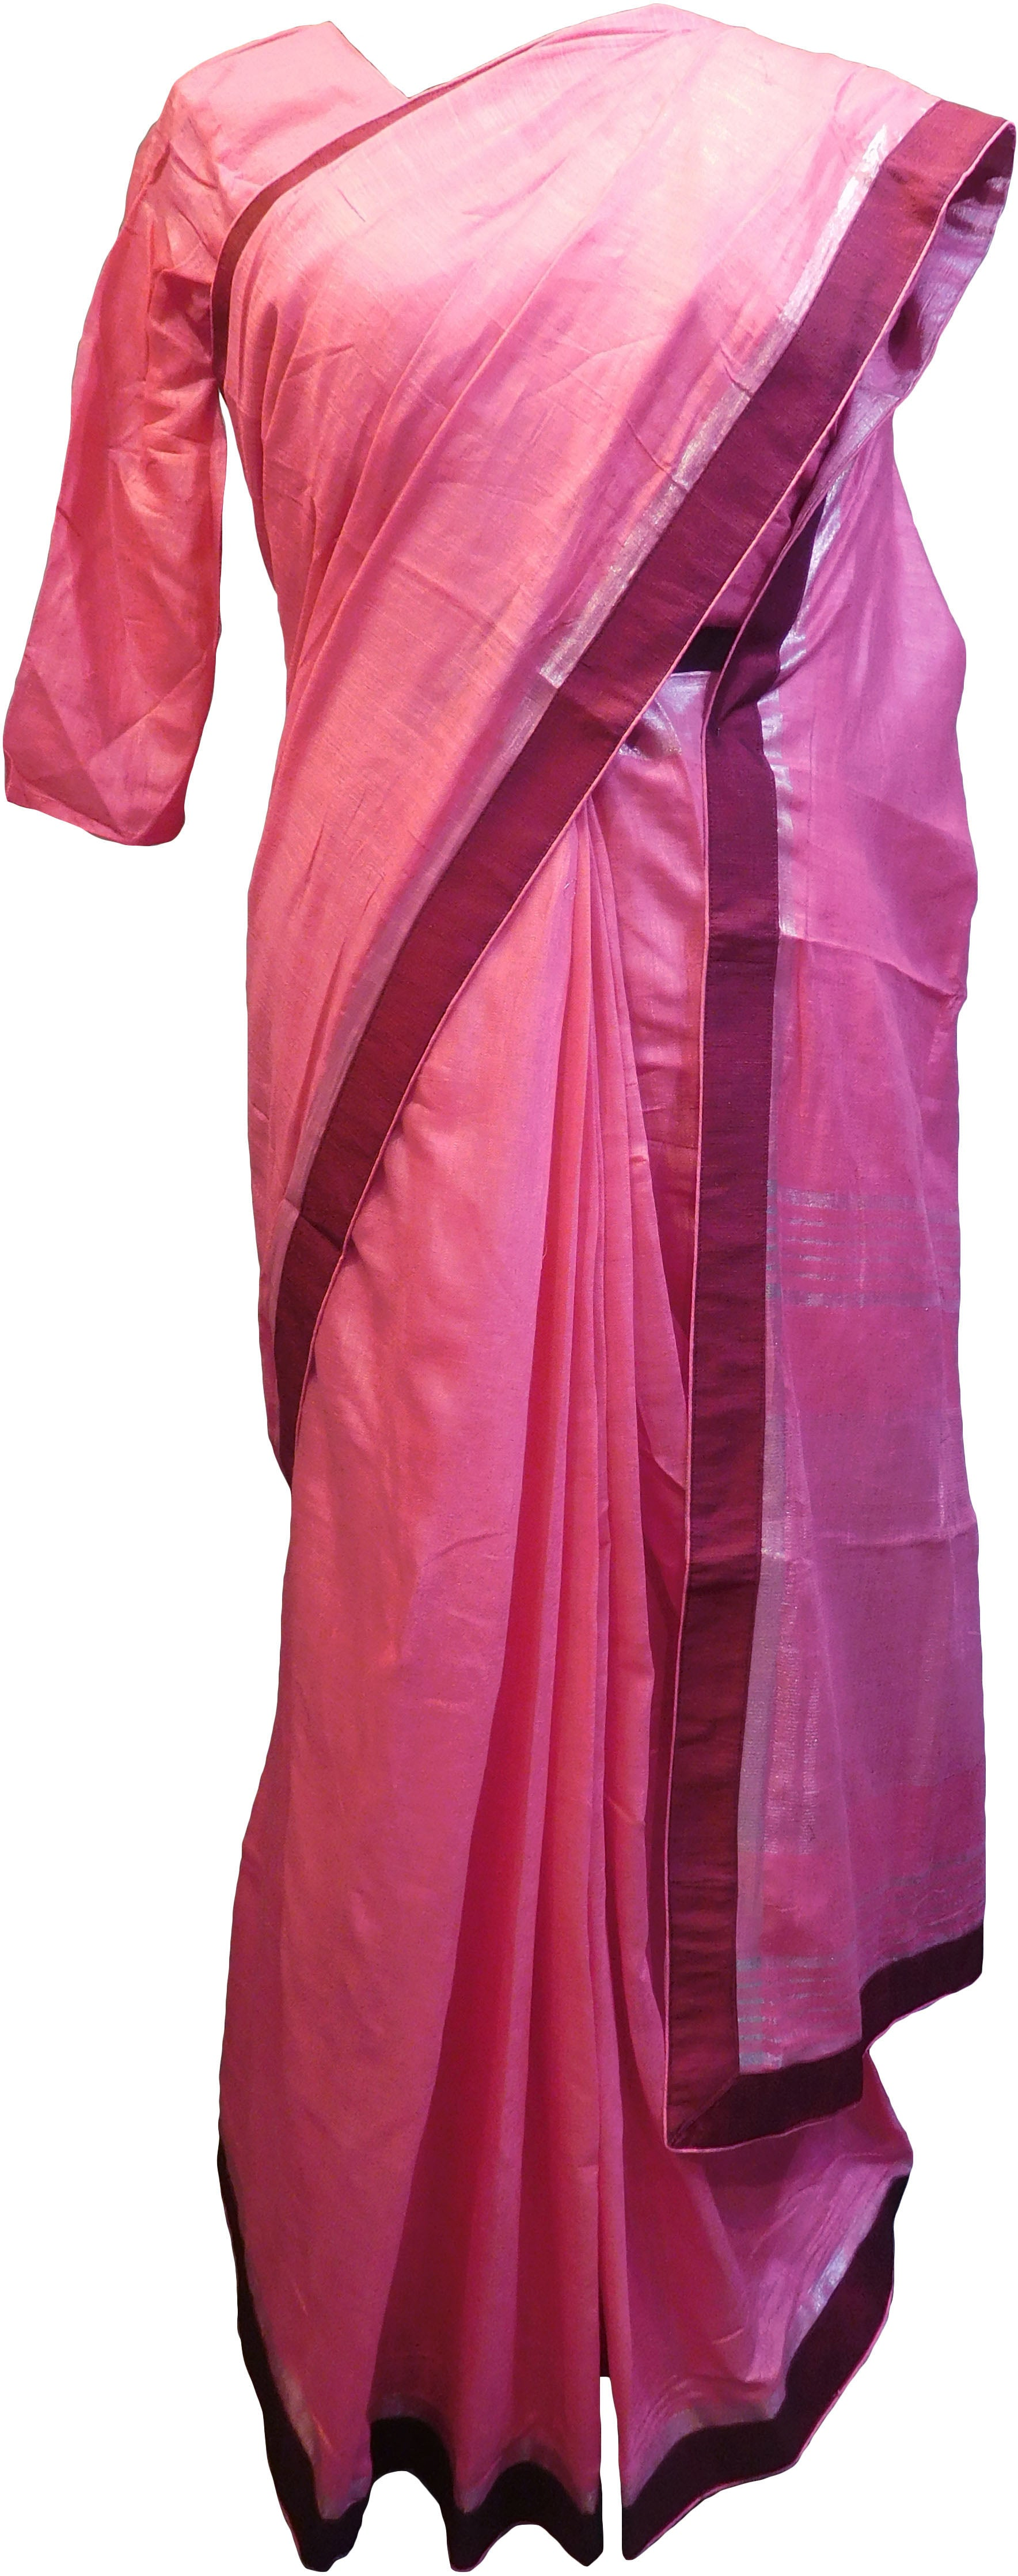 SMSAREE Pink Designer Wedding Partywear Handloom Linen Thread & Zari Hand Embroidery Work Bridal Saree Sari With Blouse Piece F132